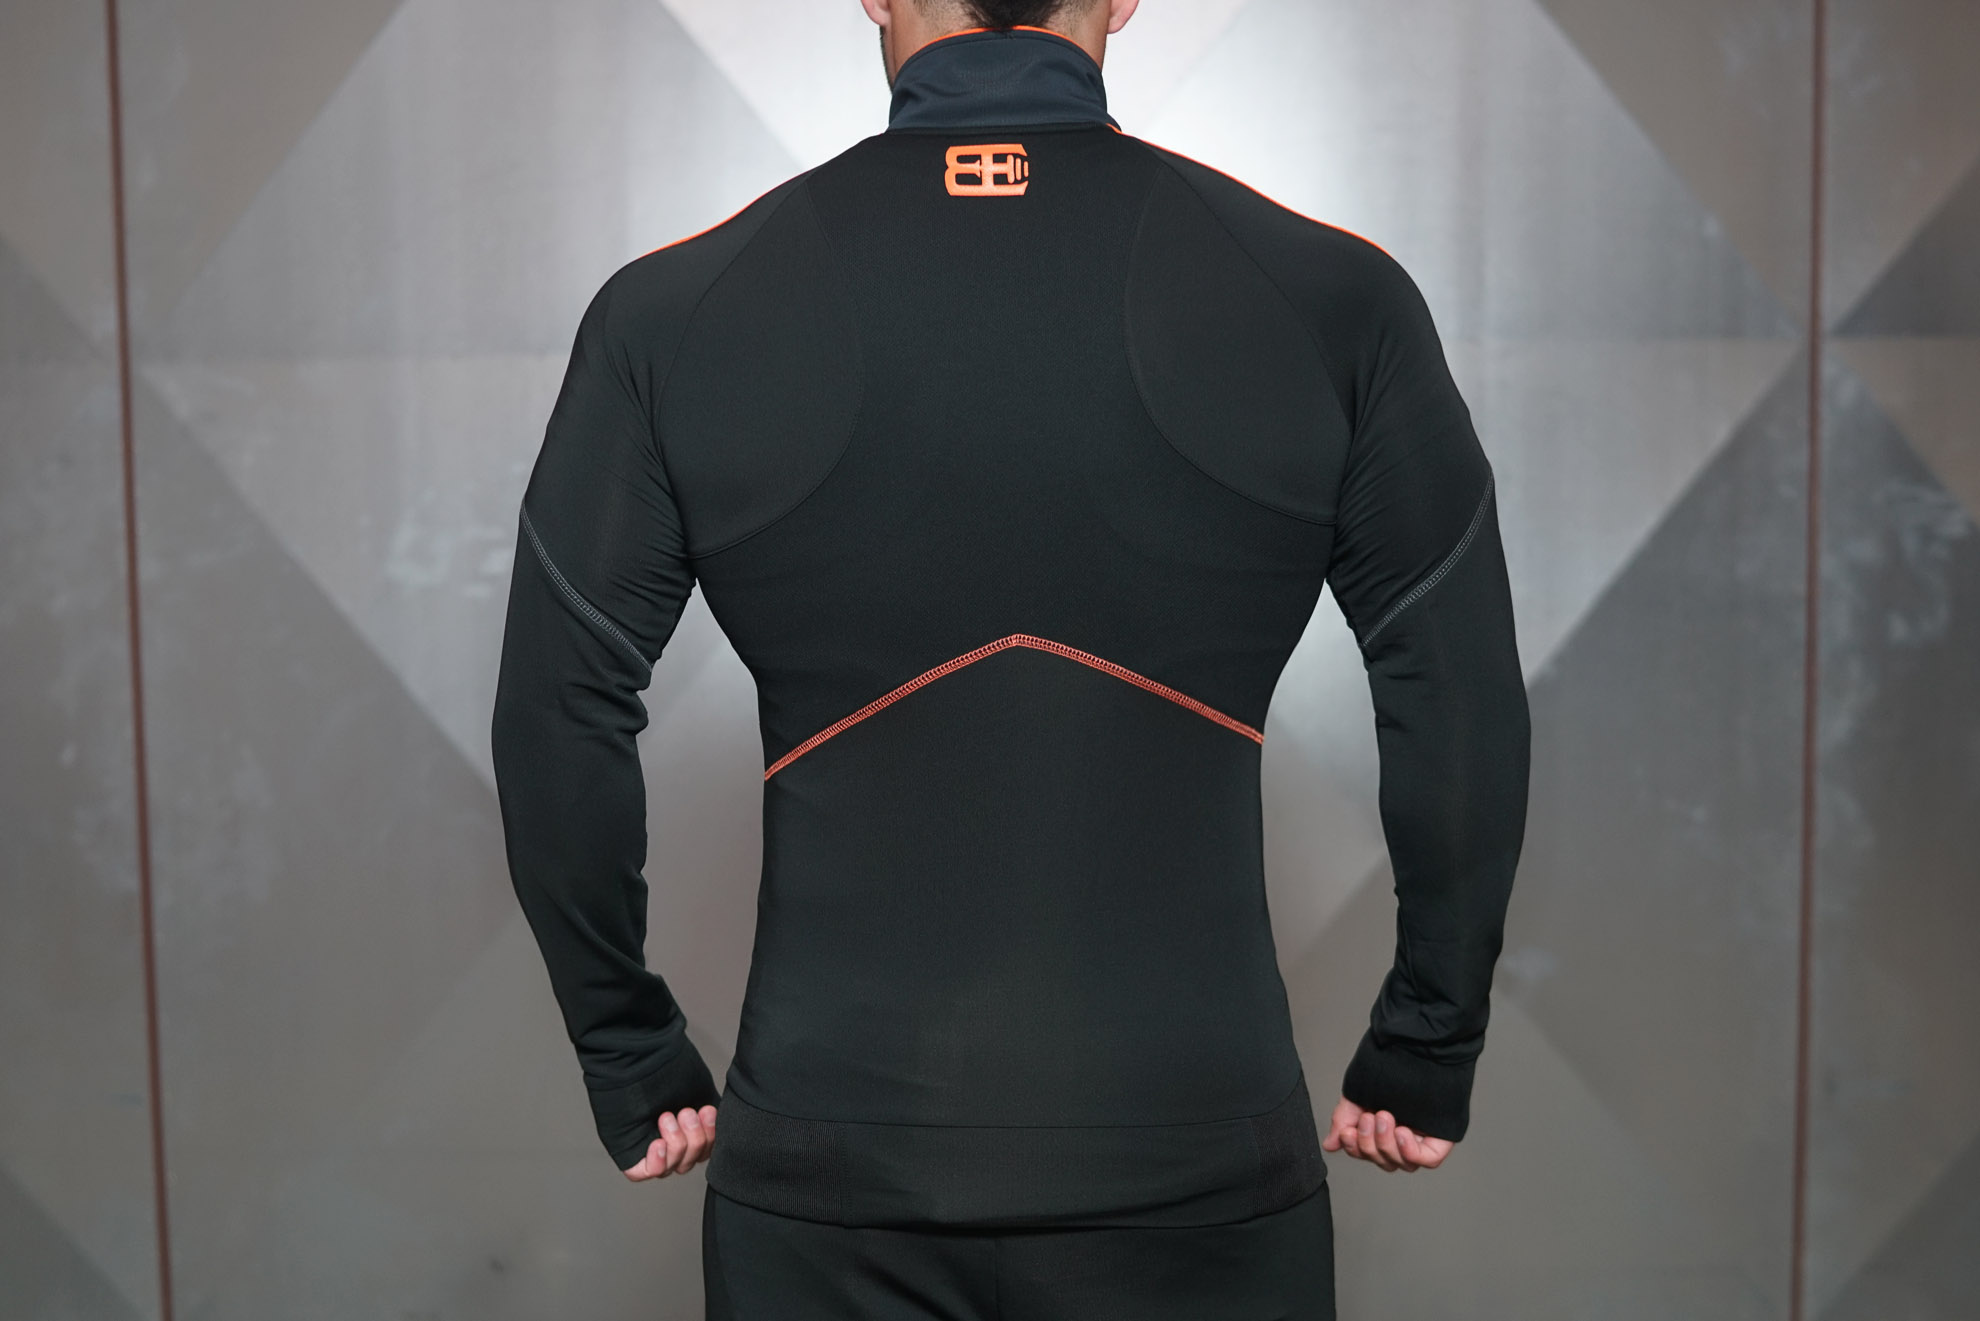 ANAX Performance Vest - Black & Dutch Orange